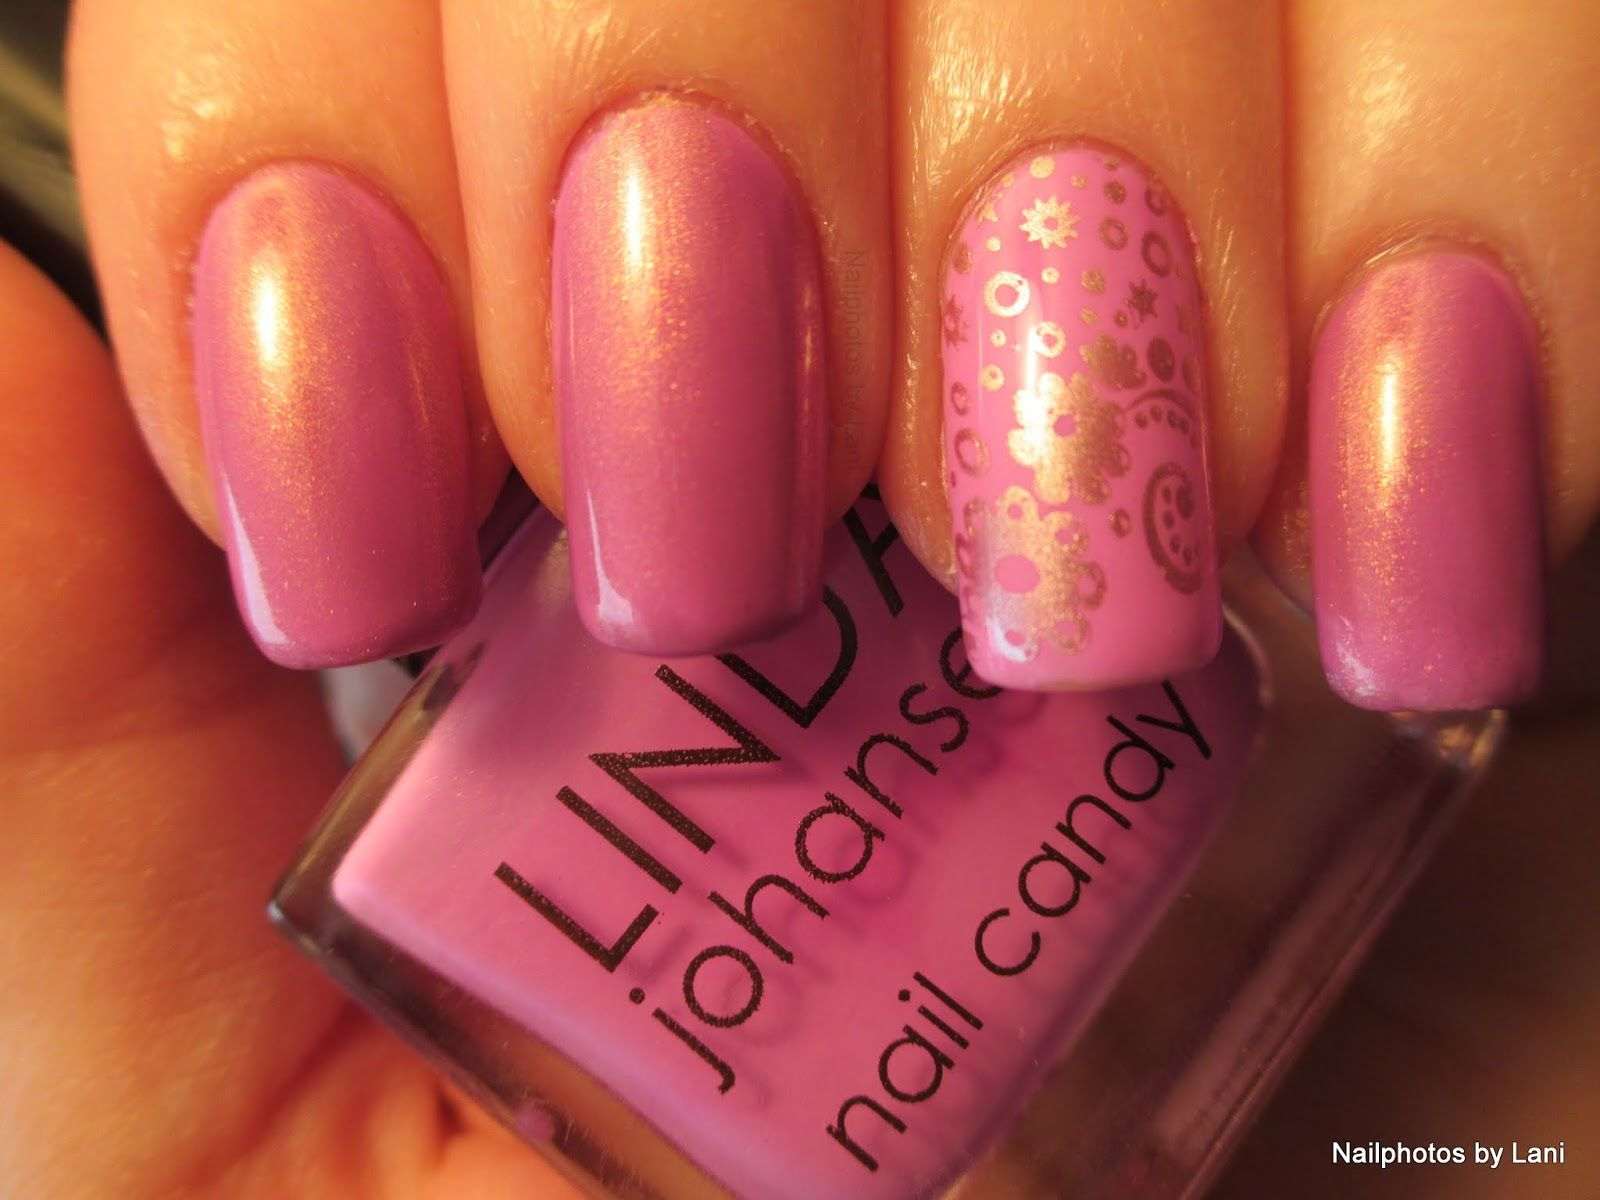 Polish Challenge: LILAC. Lilac Lilly, Zara and Infinity Nails stamping